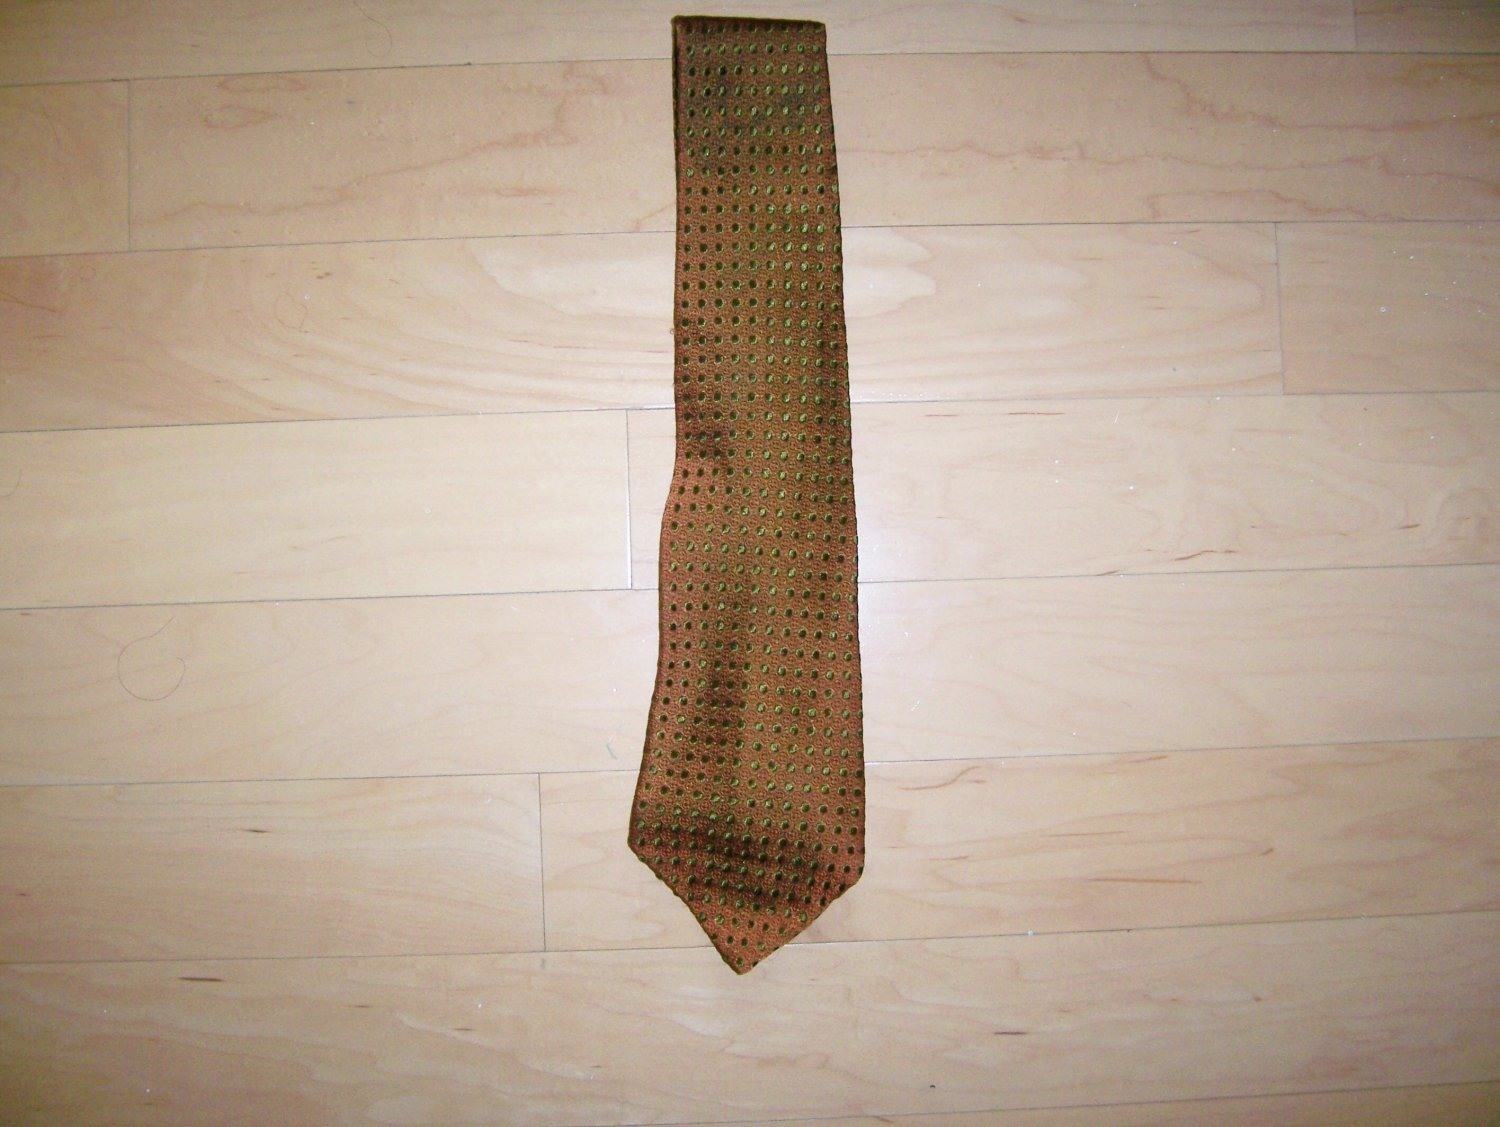 Tie Reddish Brown With Black Dots By Wm M Frazin Custom Made BNK1491